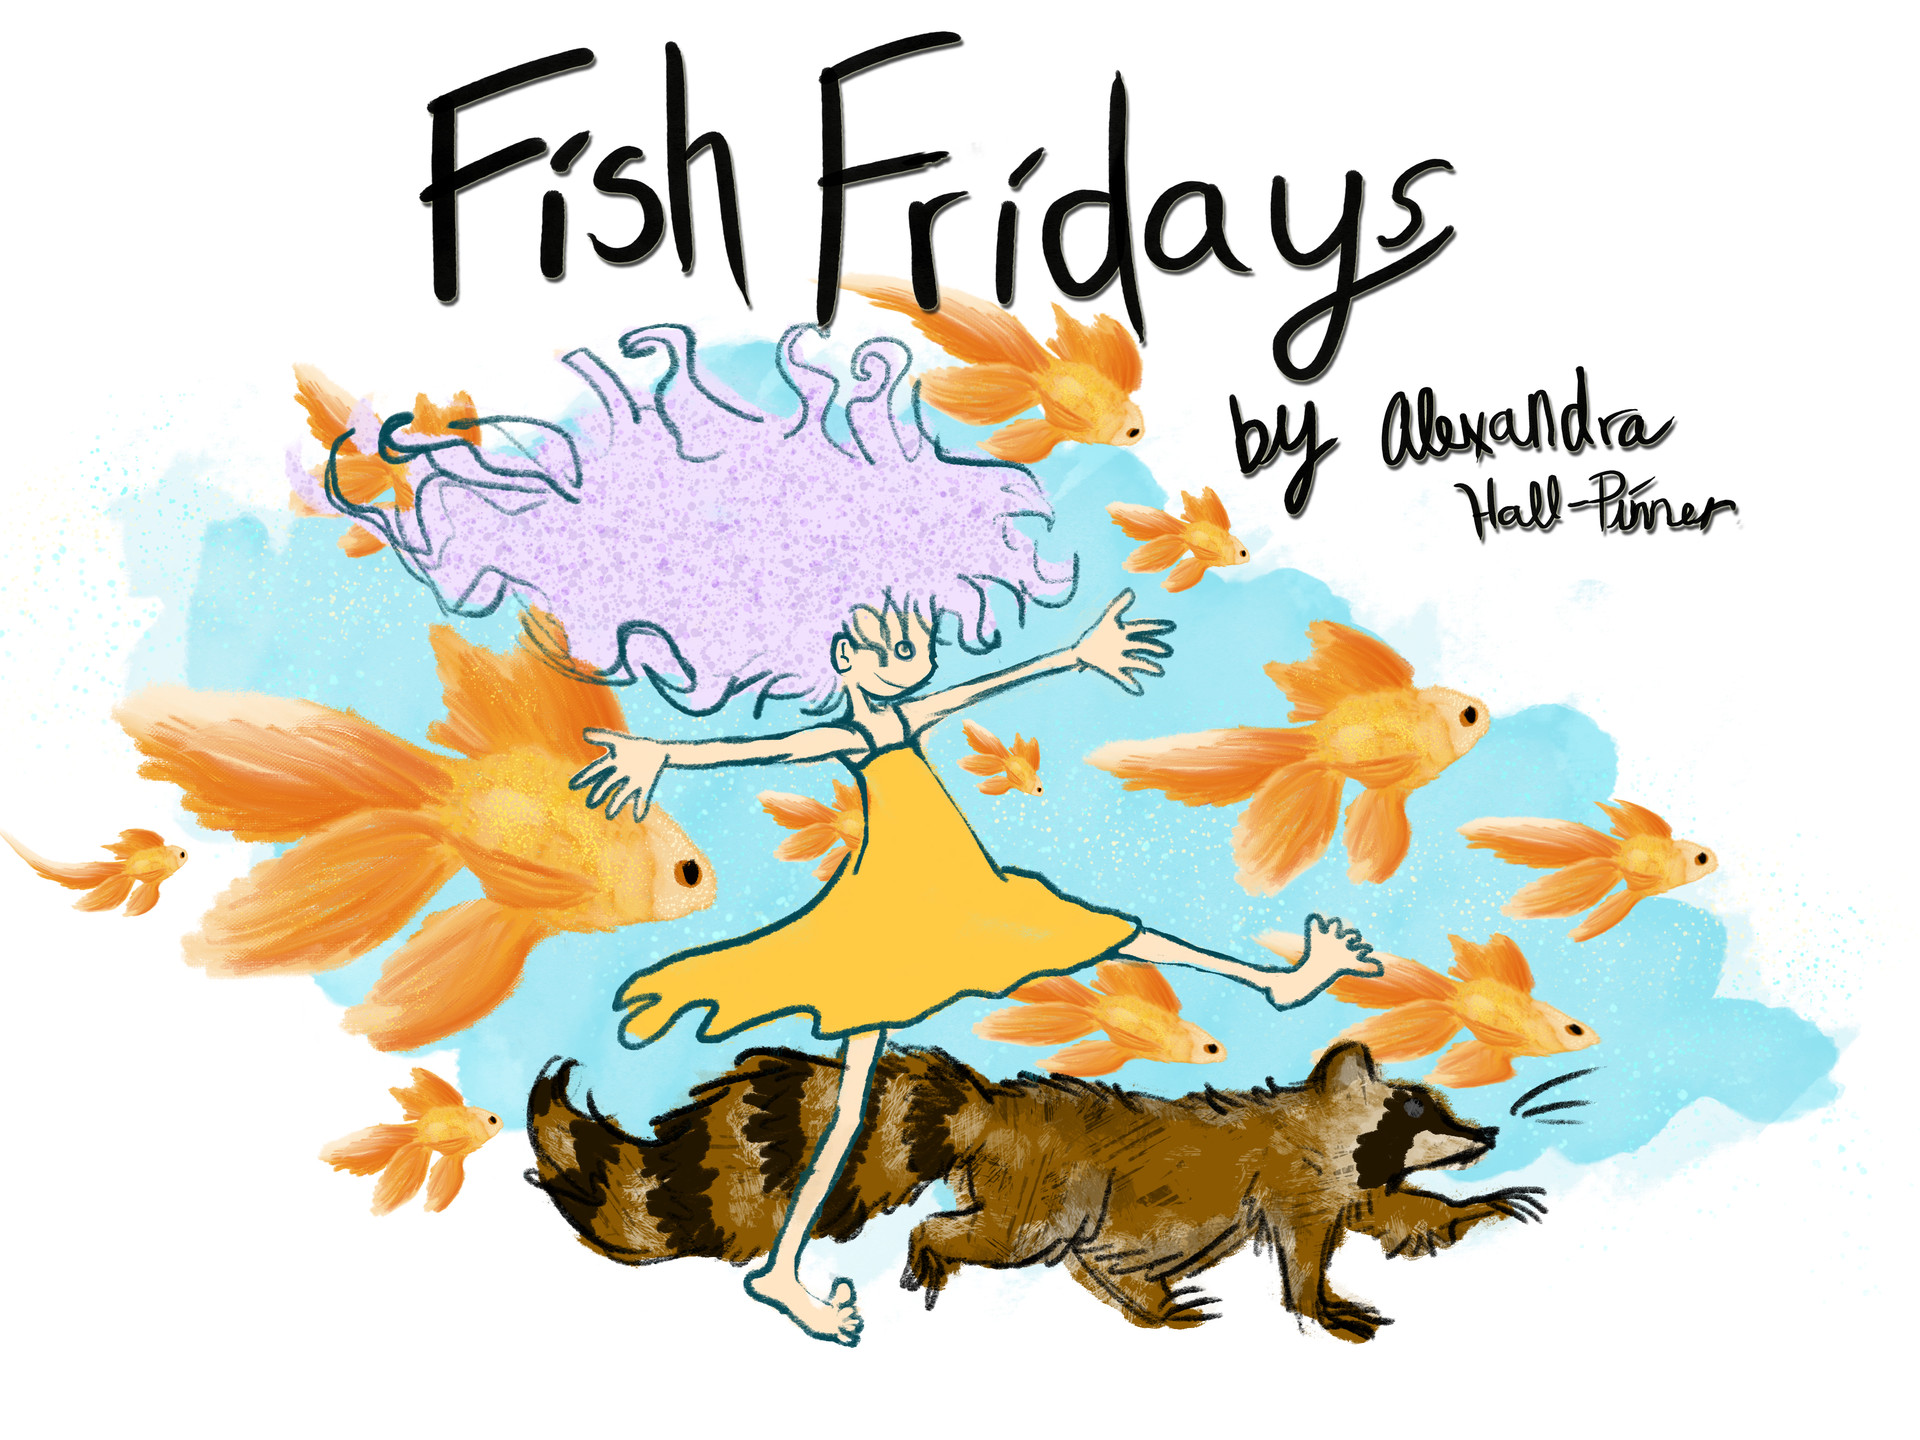 Alexandra hall pinner fish fridays cover